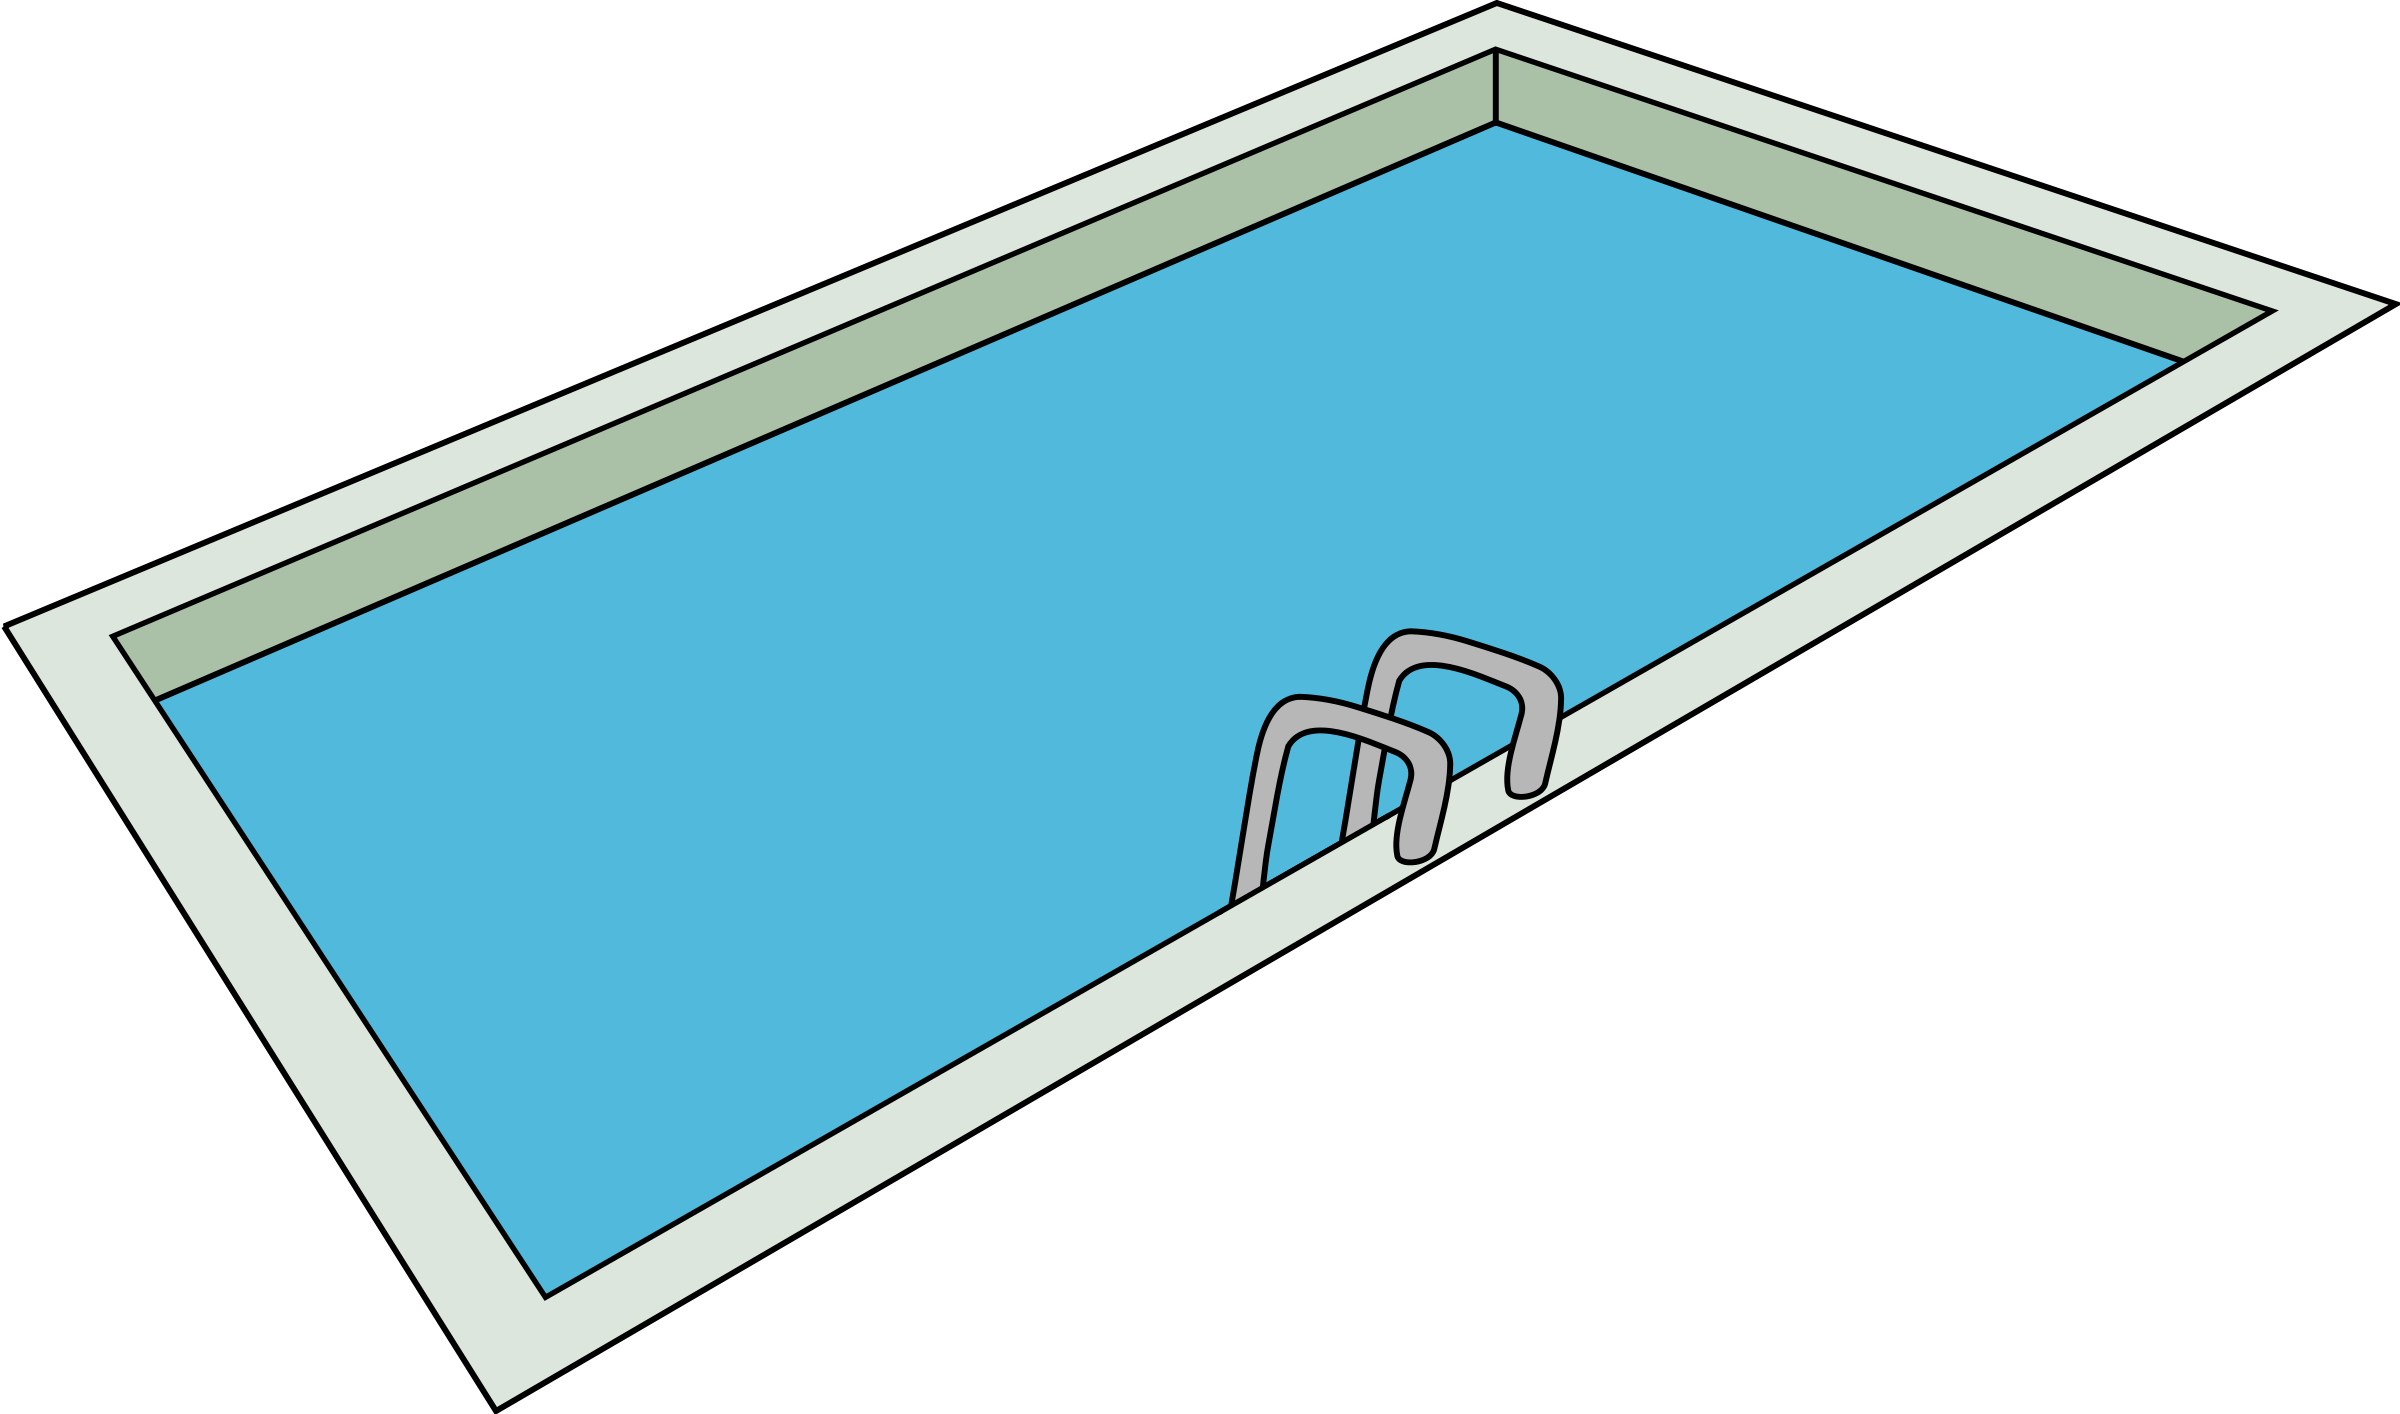 Swimming Pool Cartoon Images Clipart Best